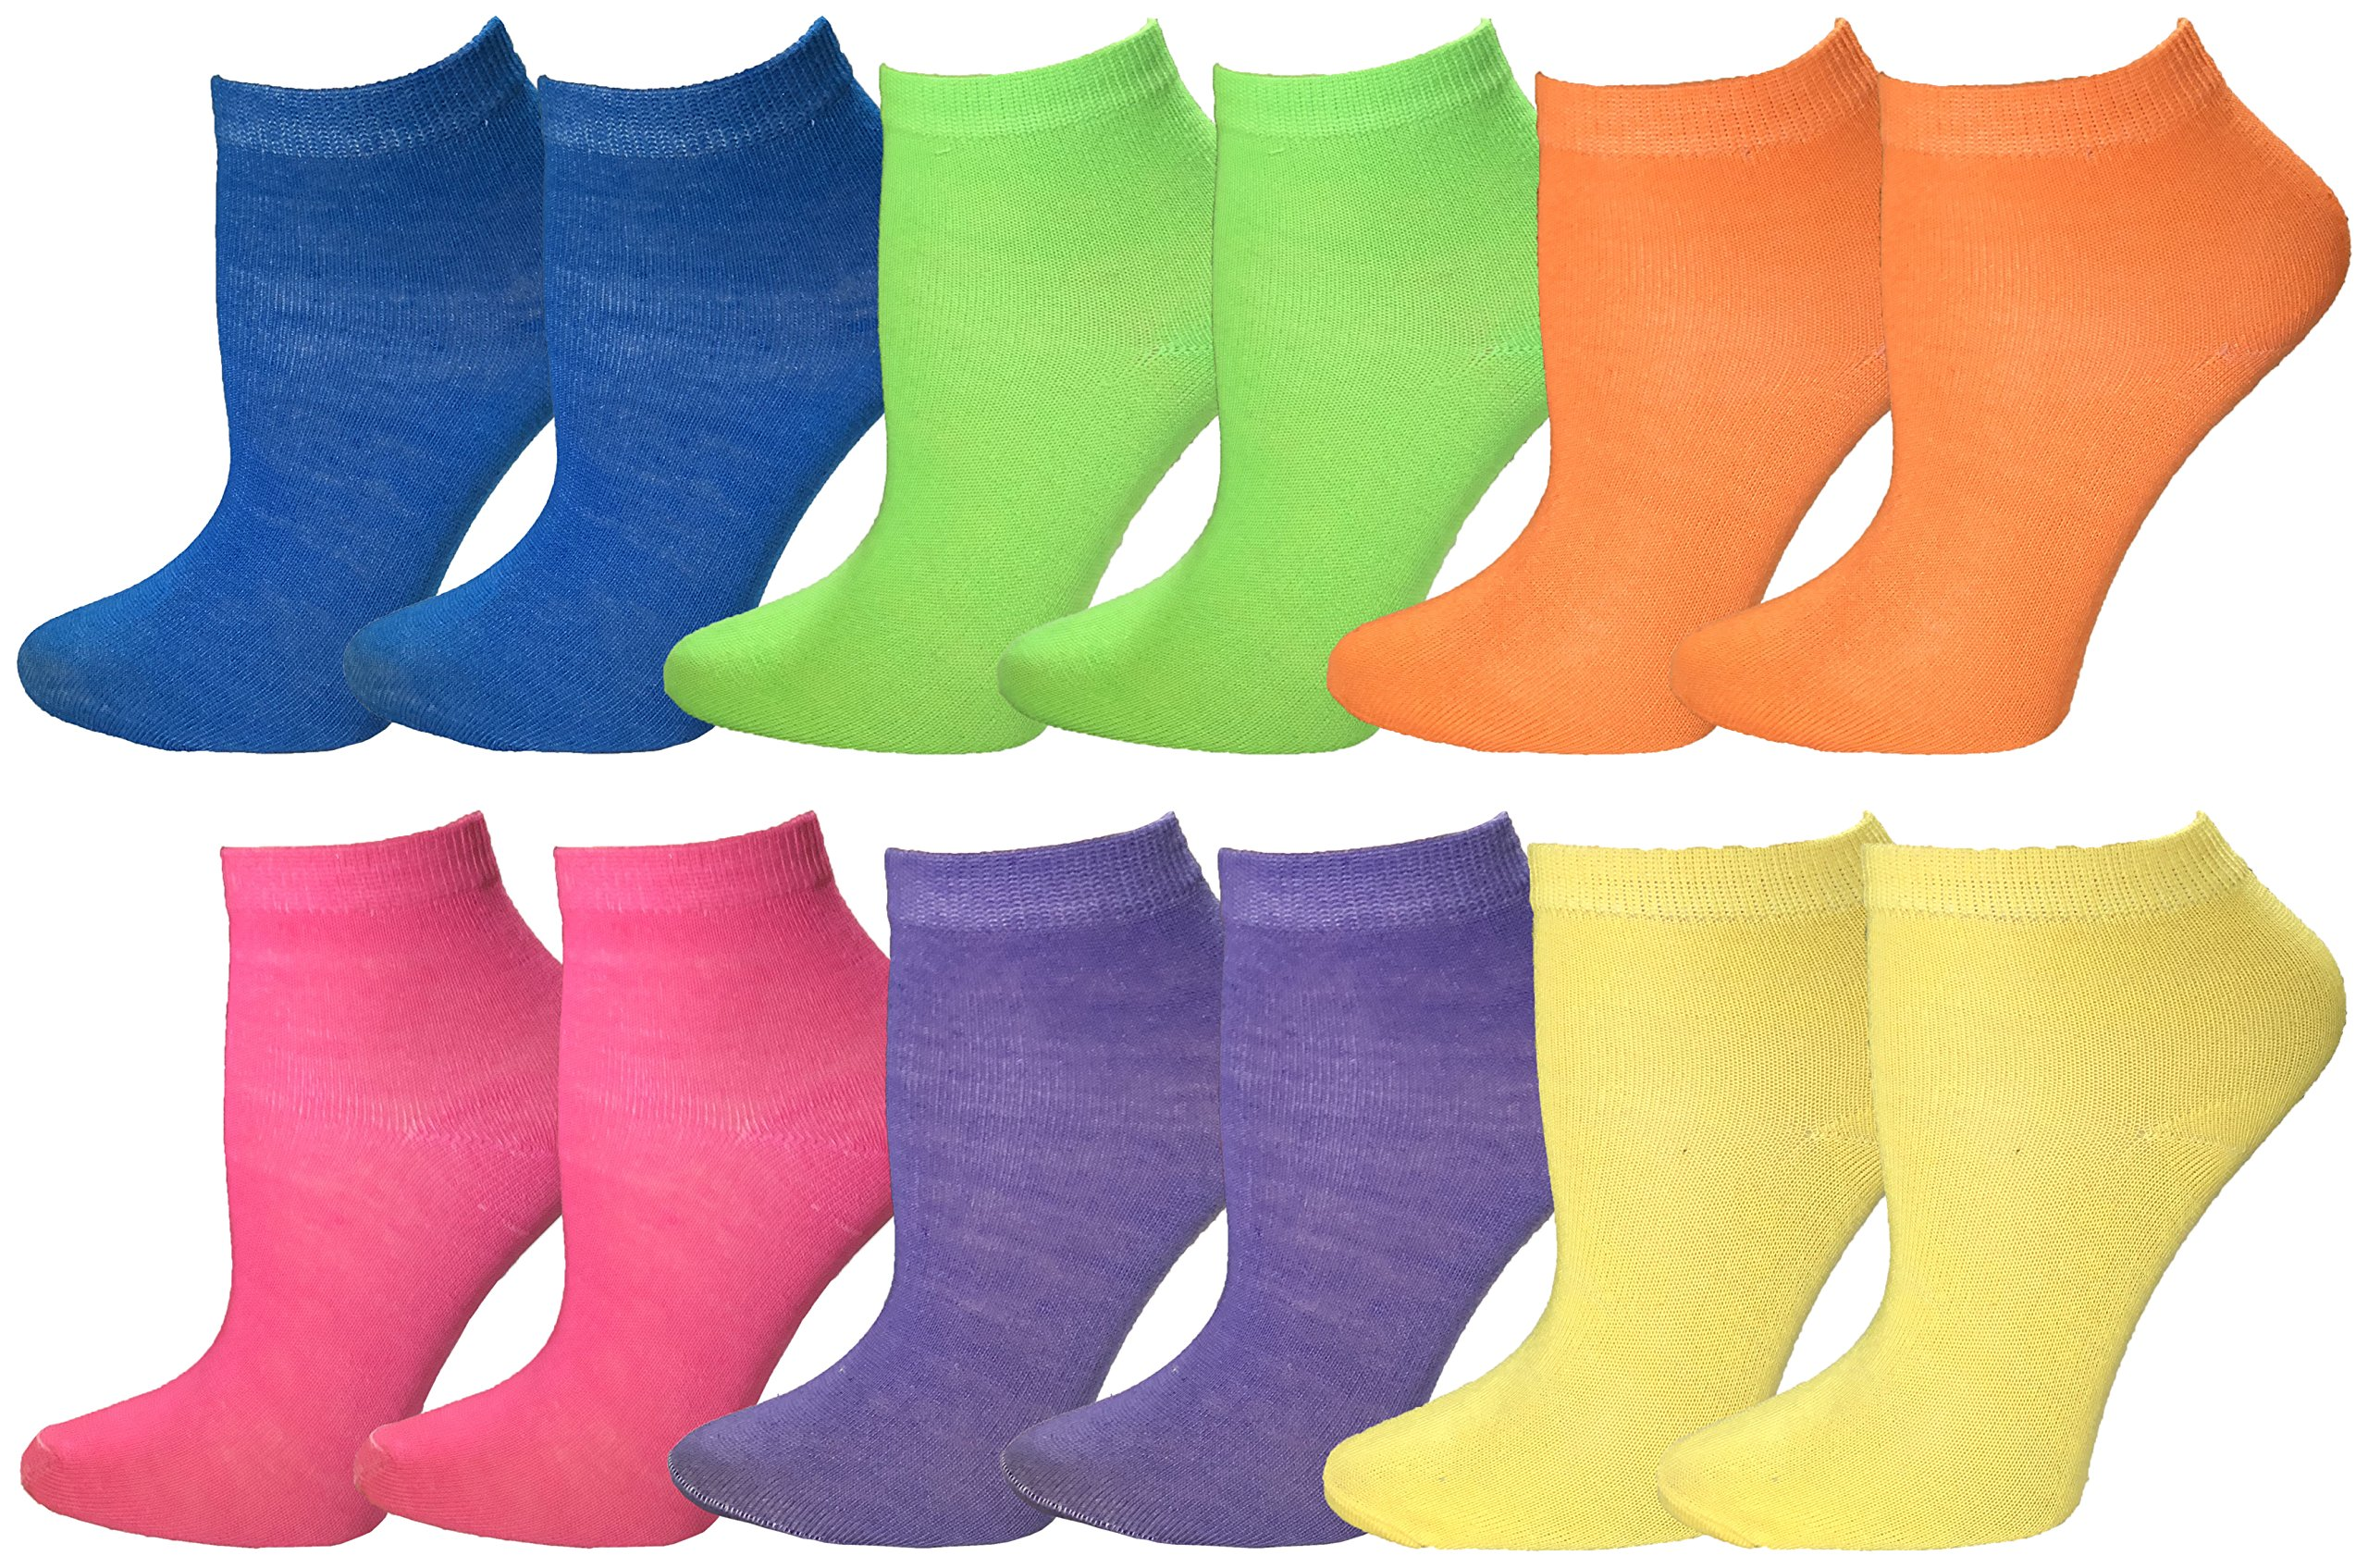 Kids No Show Ankle Socks, 12 Pairs Patterned Colorful Cute Athletic Fun Sport Sock, Boys & Girls (Neon, 4-6 (Child Shoe Size 7-10))